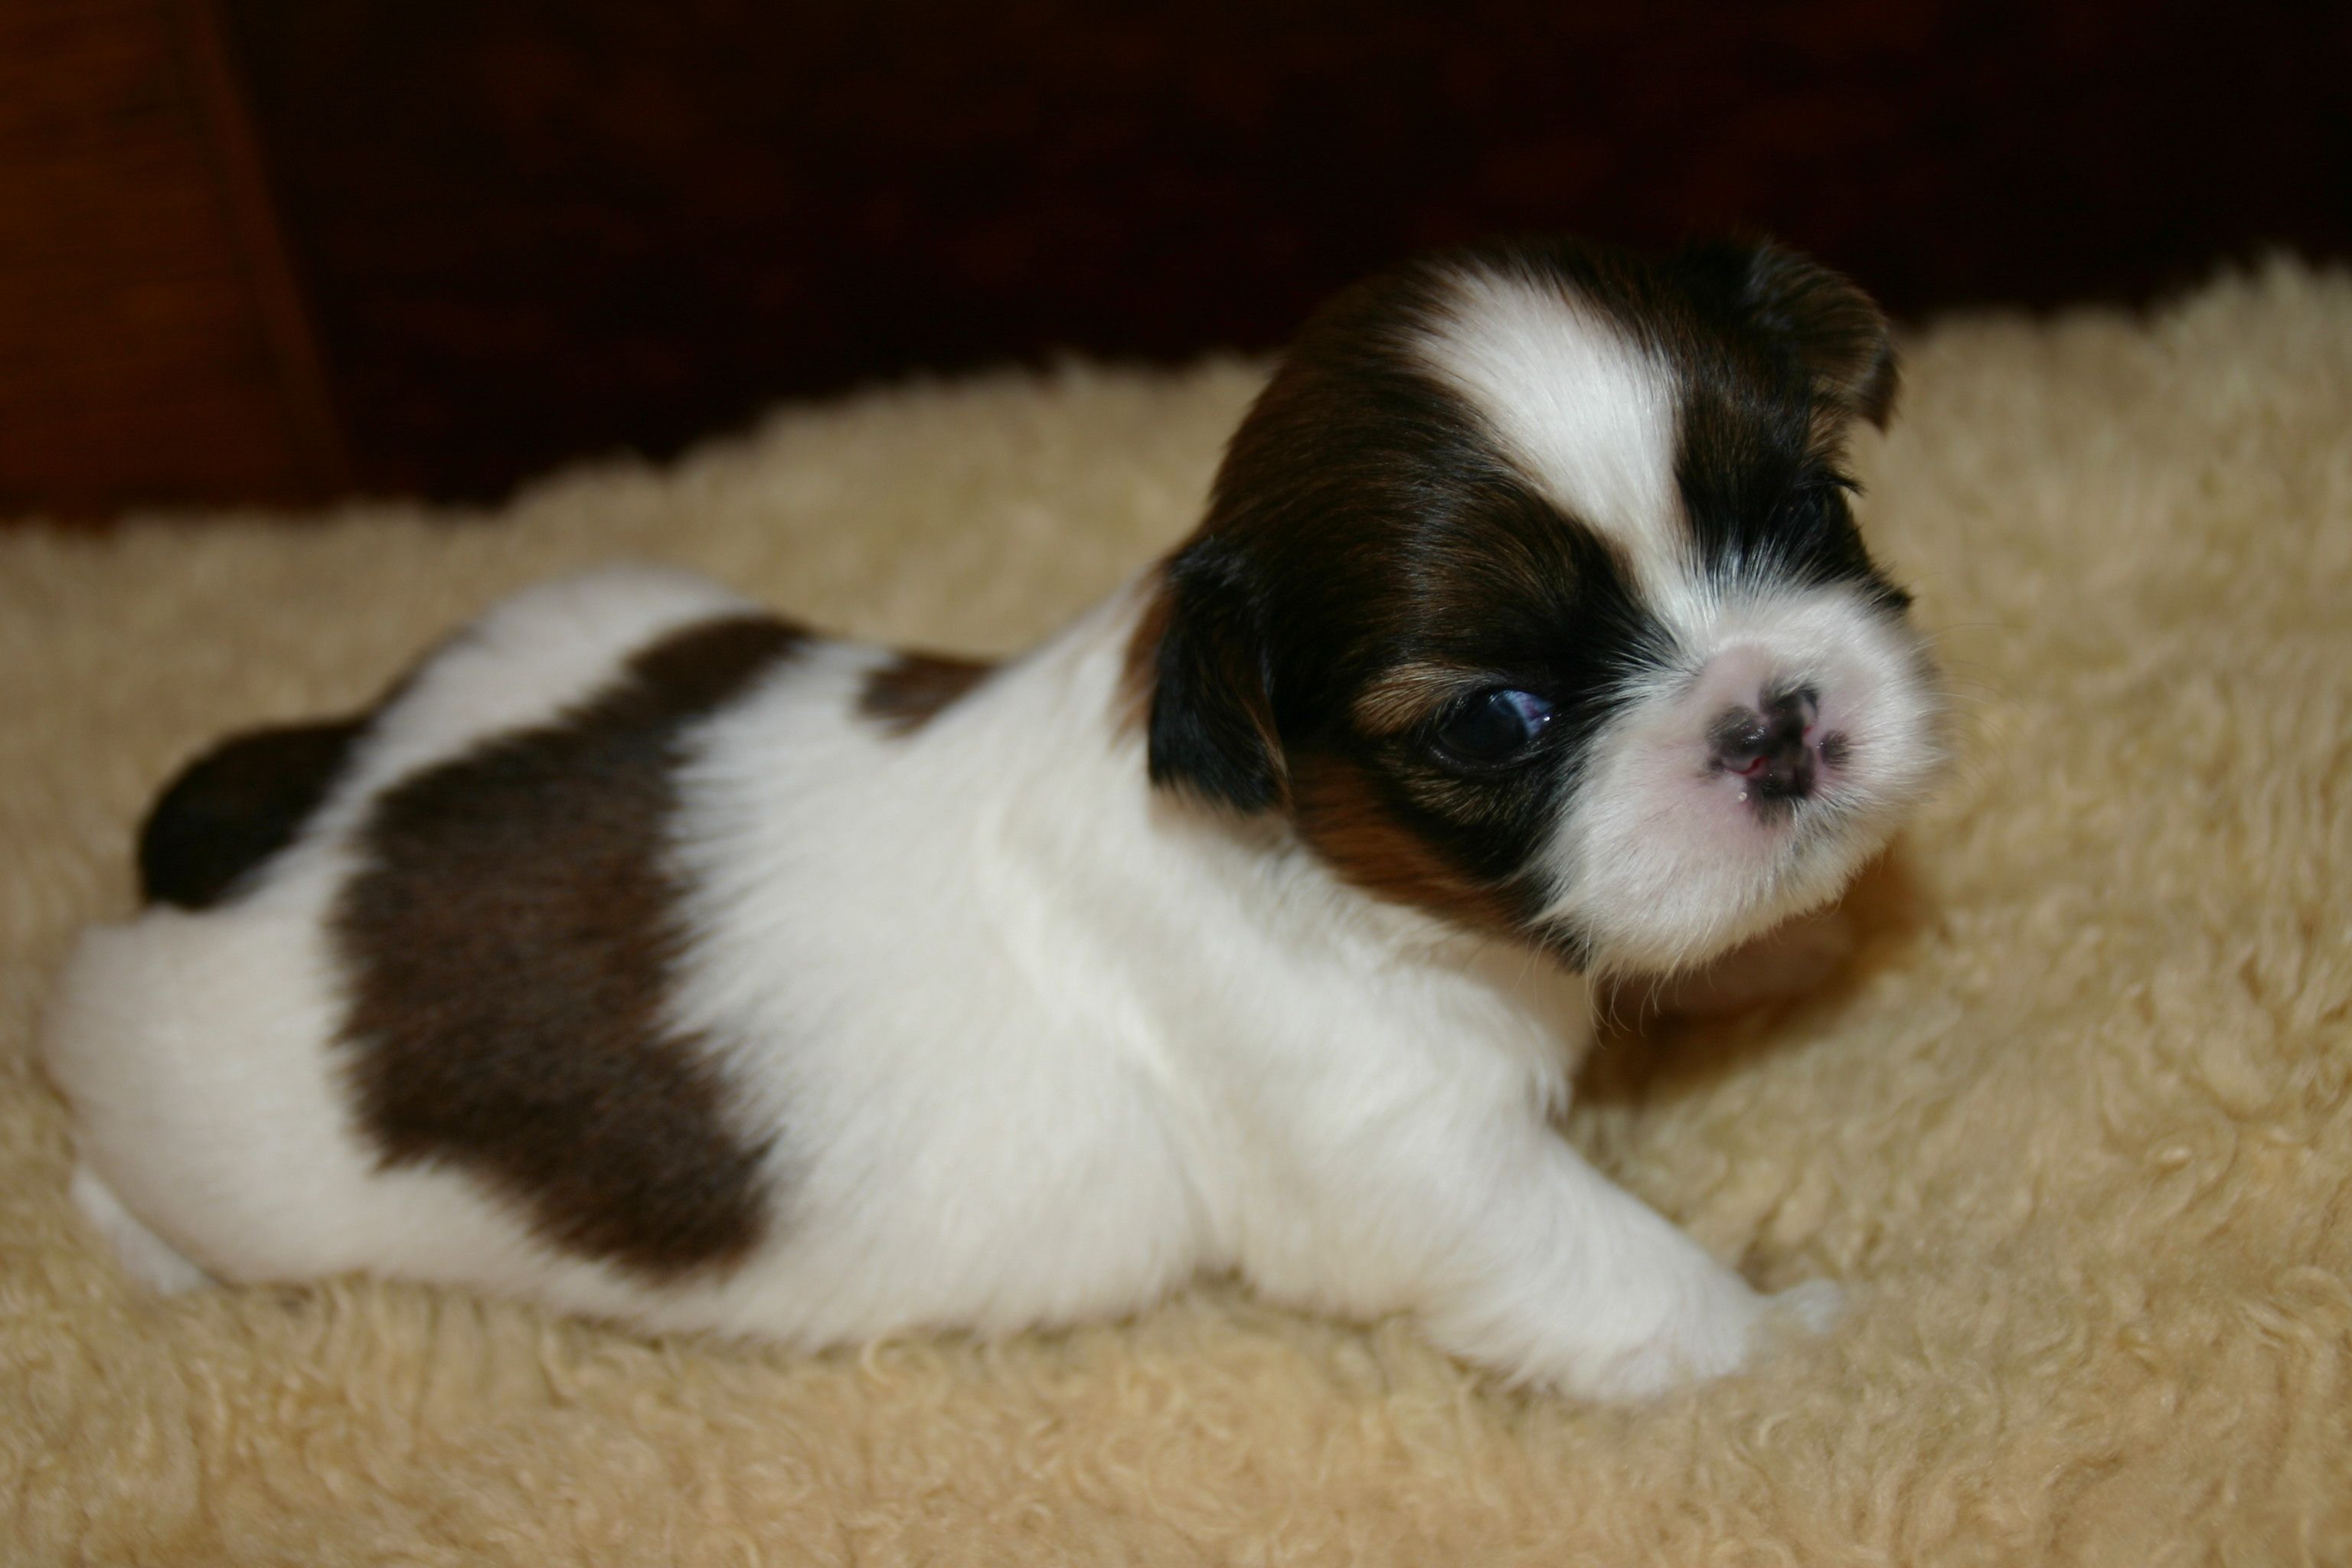 4 Week Old Shih Tzu Puppies With Images Shih Tzu Puppy Dog